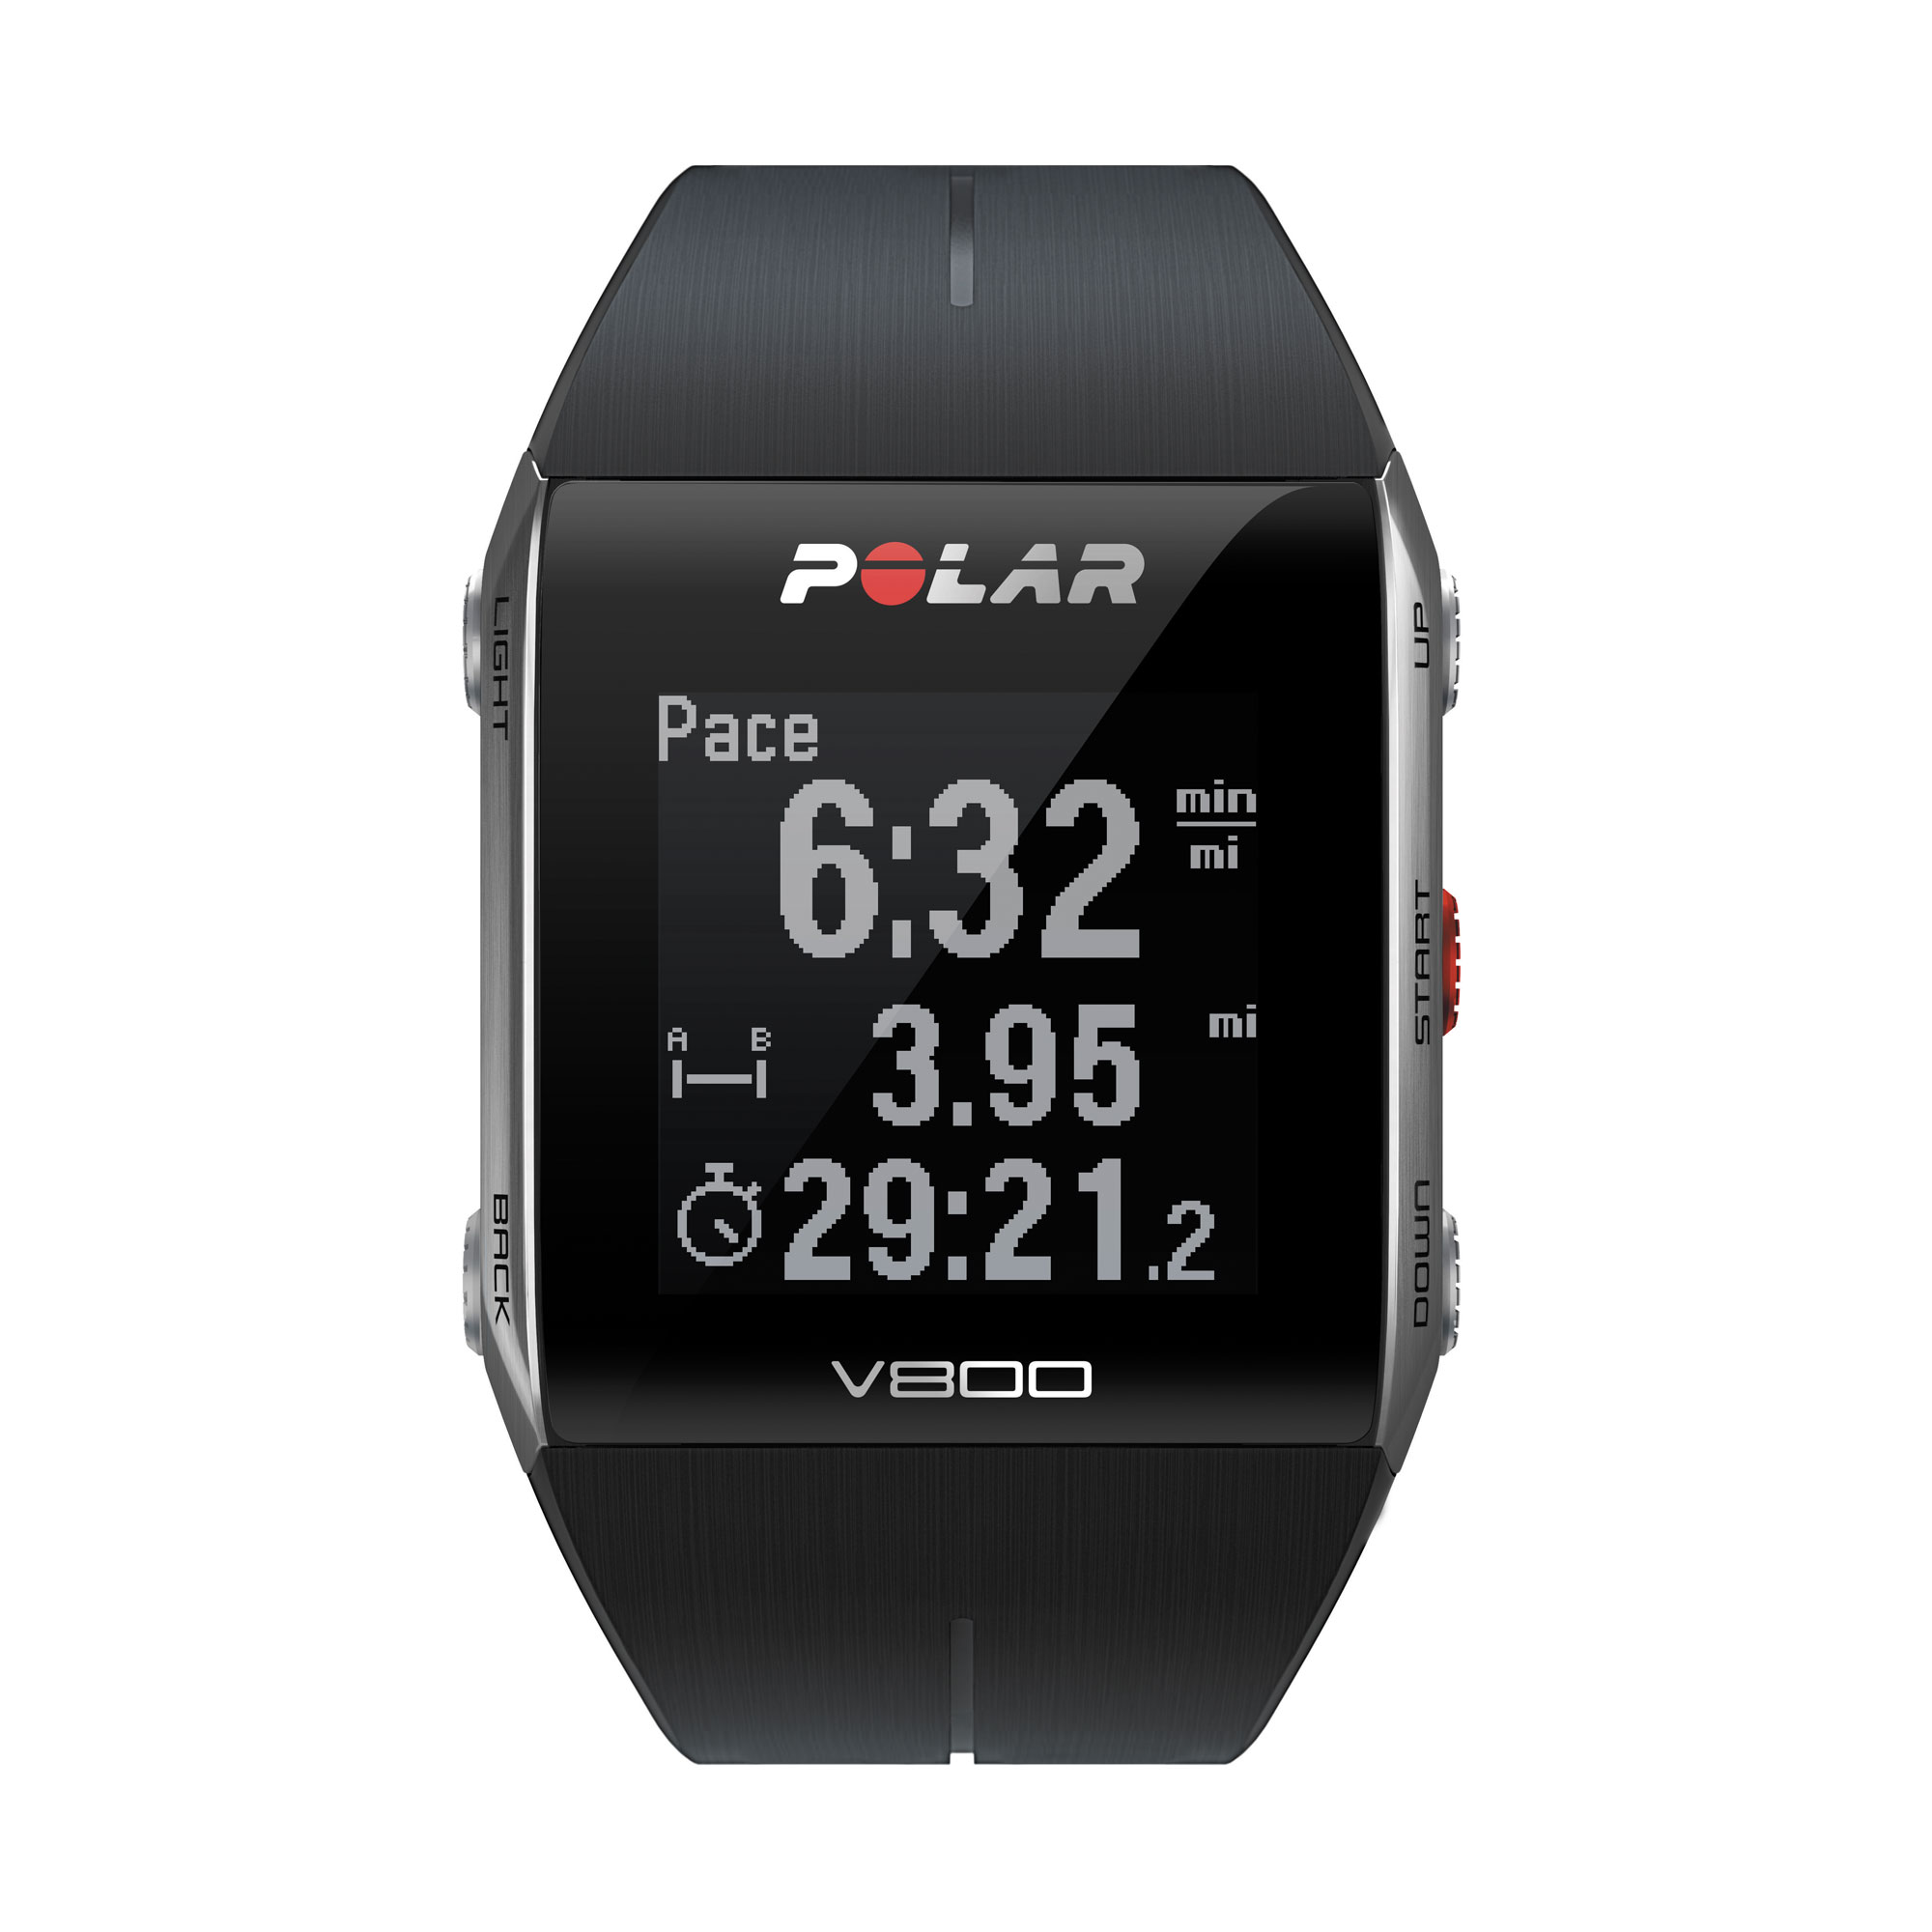 La montre GPS de sport Polar V800, en version noire. Ph Moctar KANE.